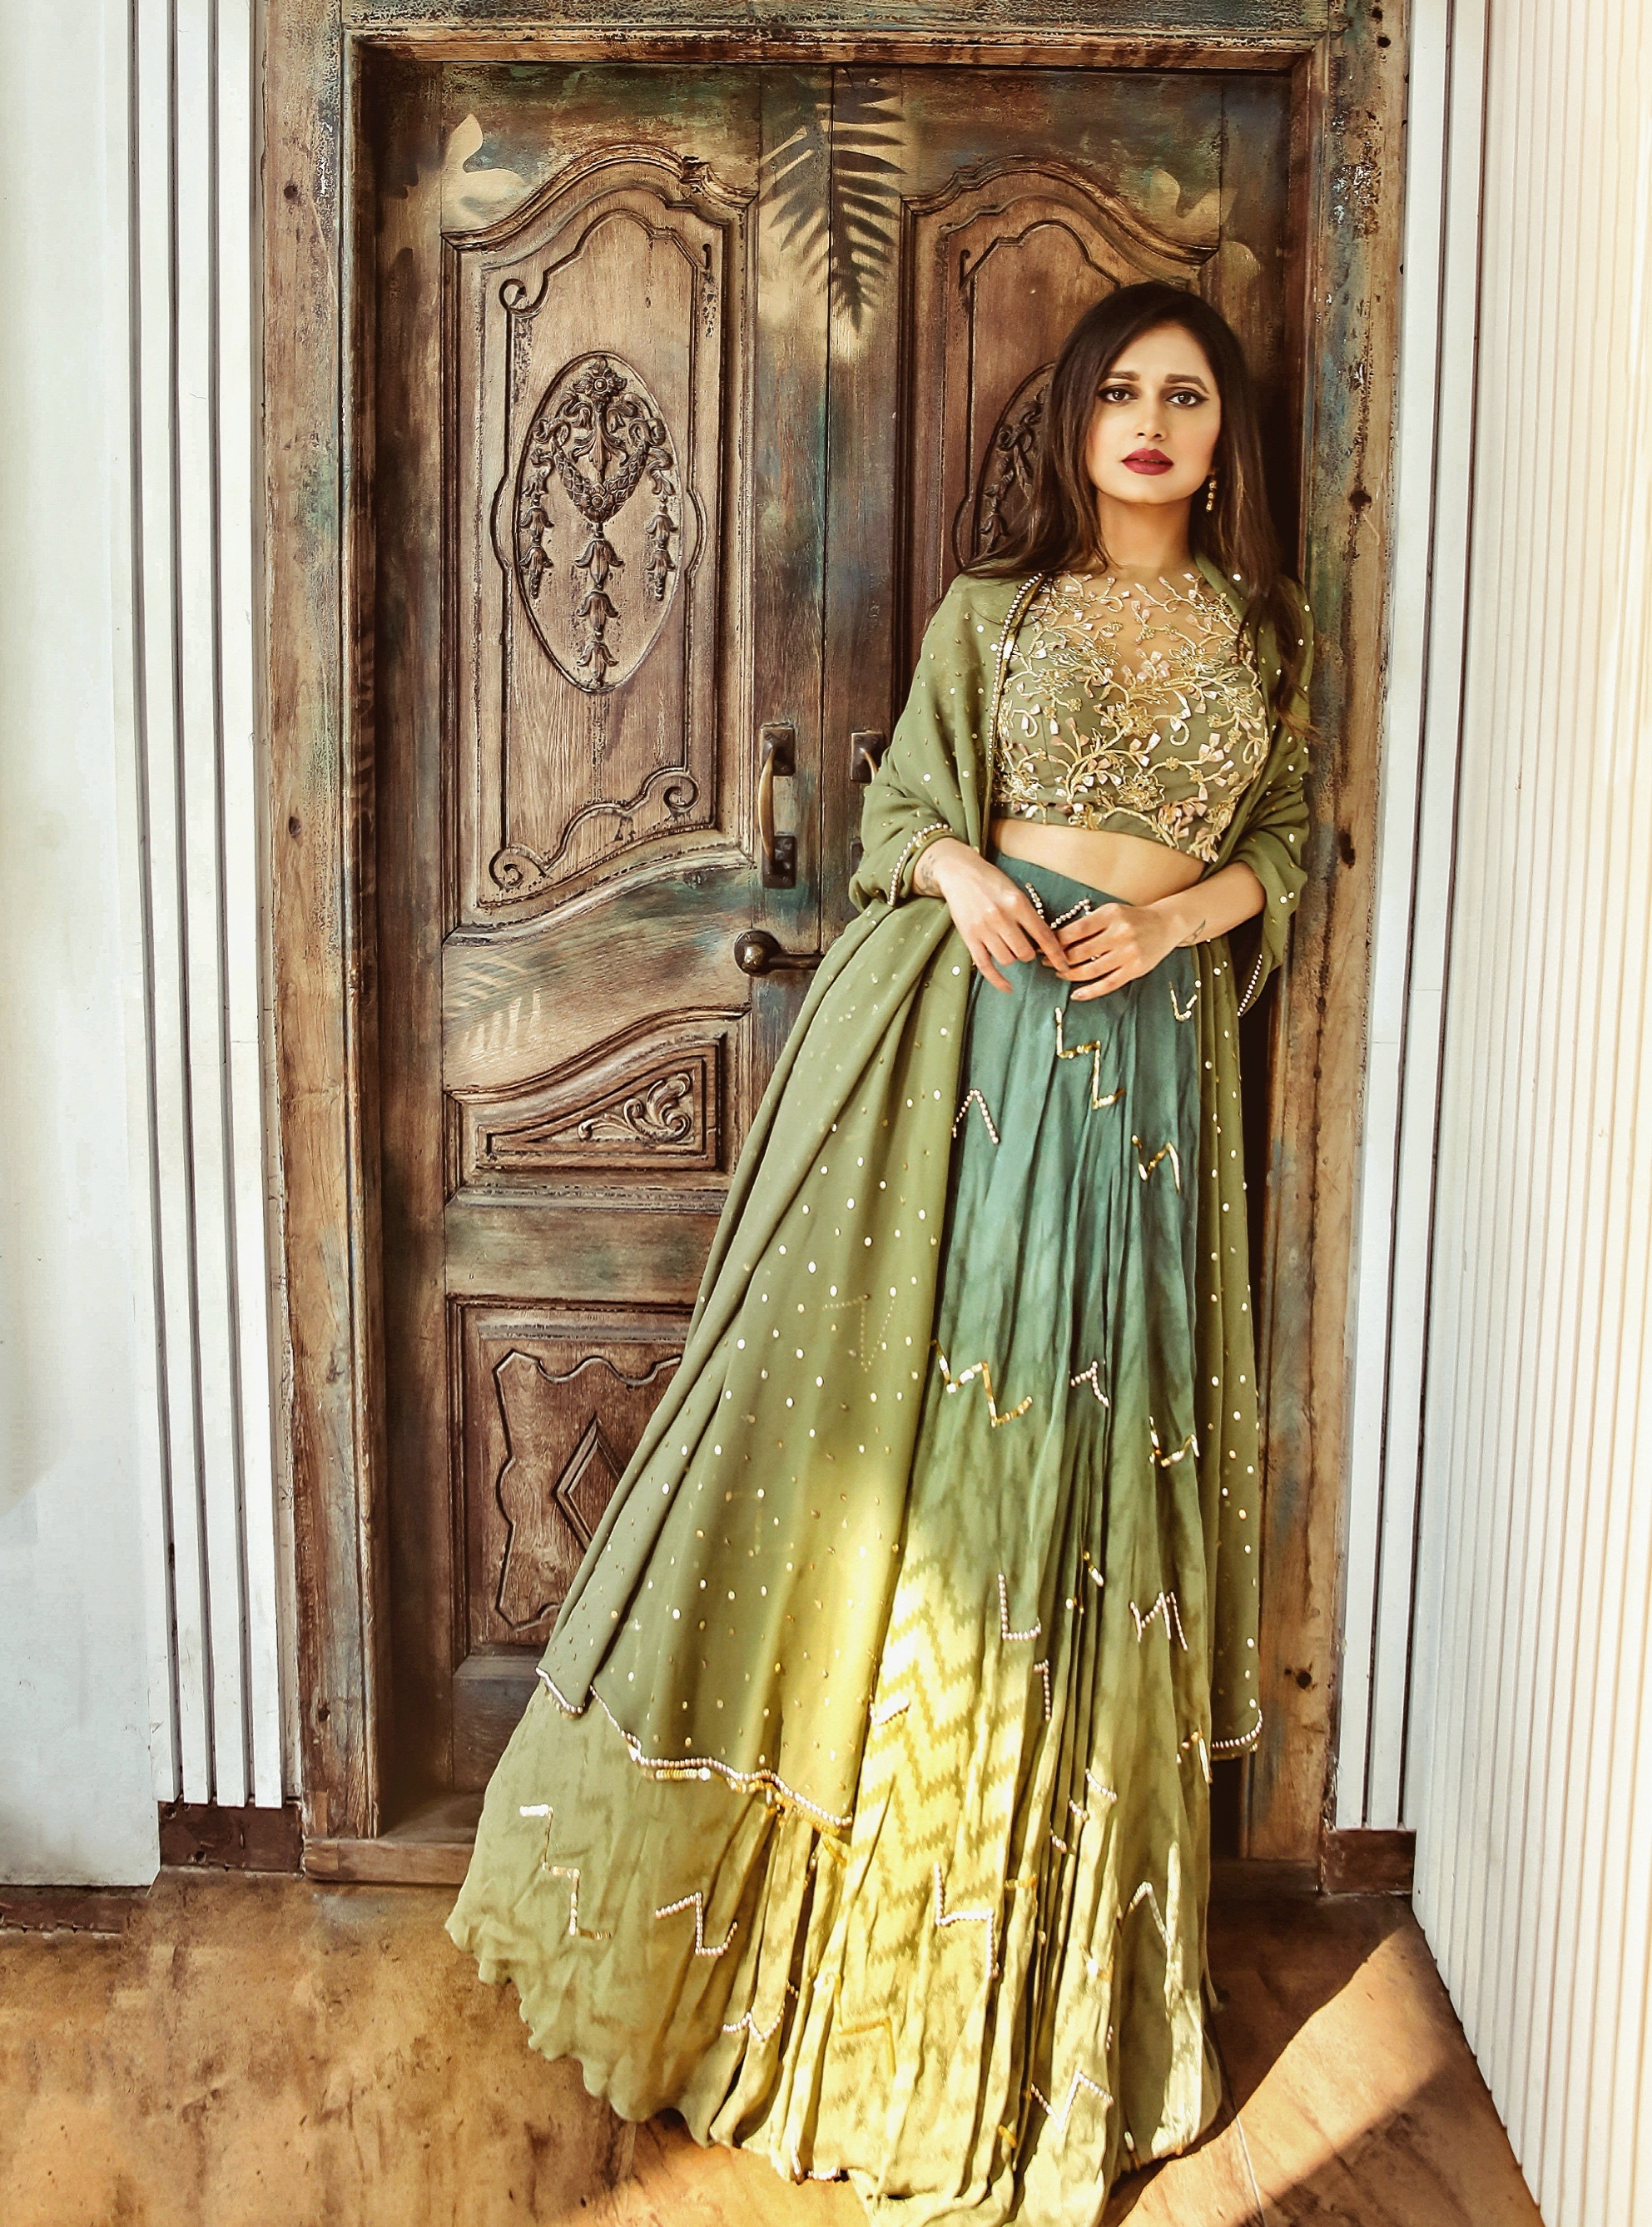 The-Chic-Armoire-by-Nidhi-Kunder-Ohaila-Khan-10